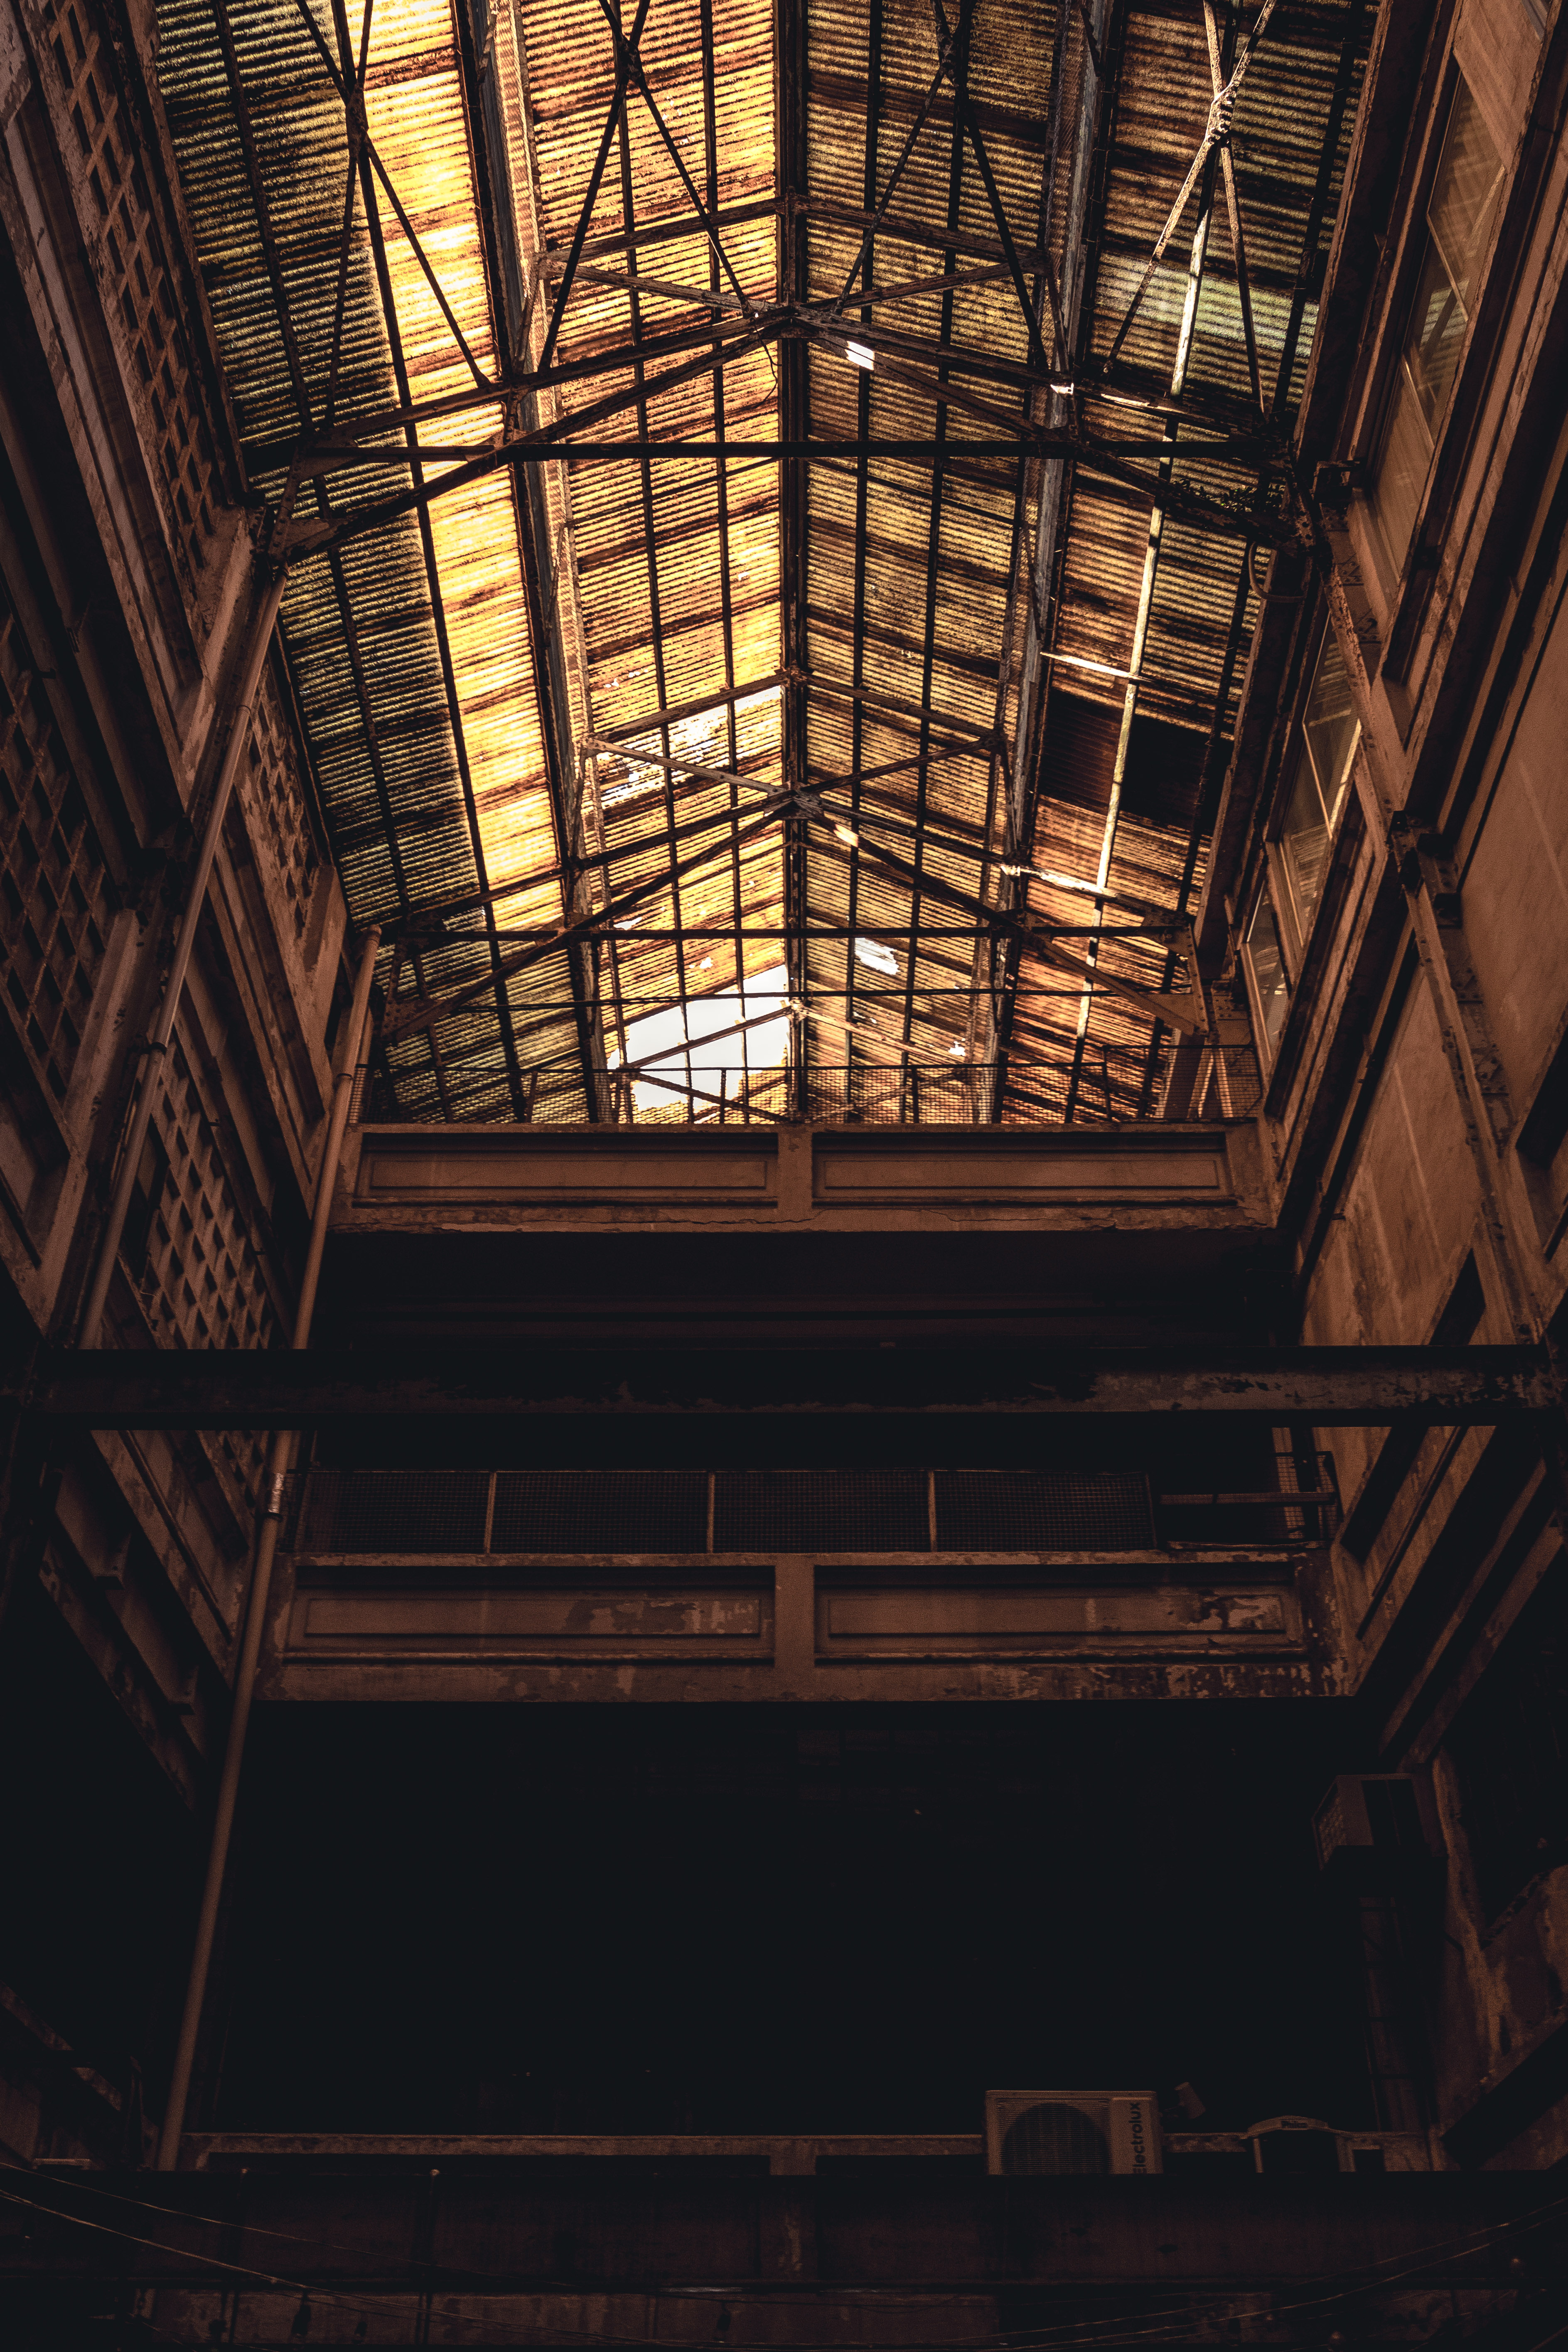 Architectural Photography of Brown Building Interior View